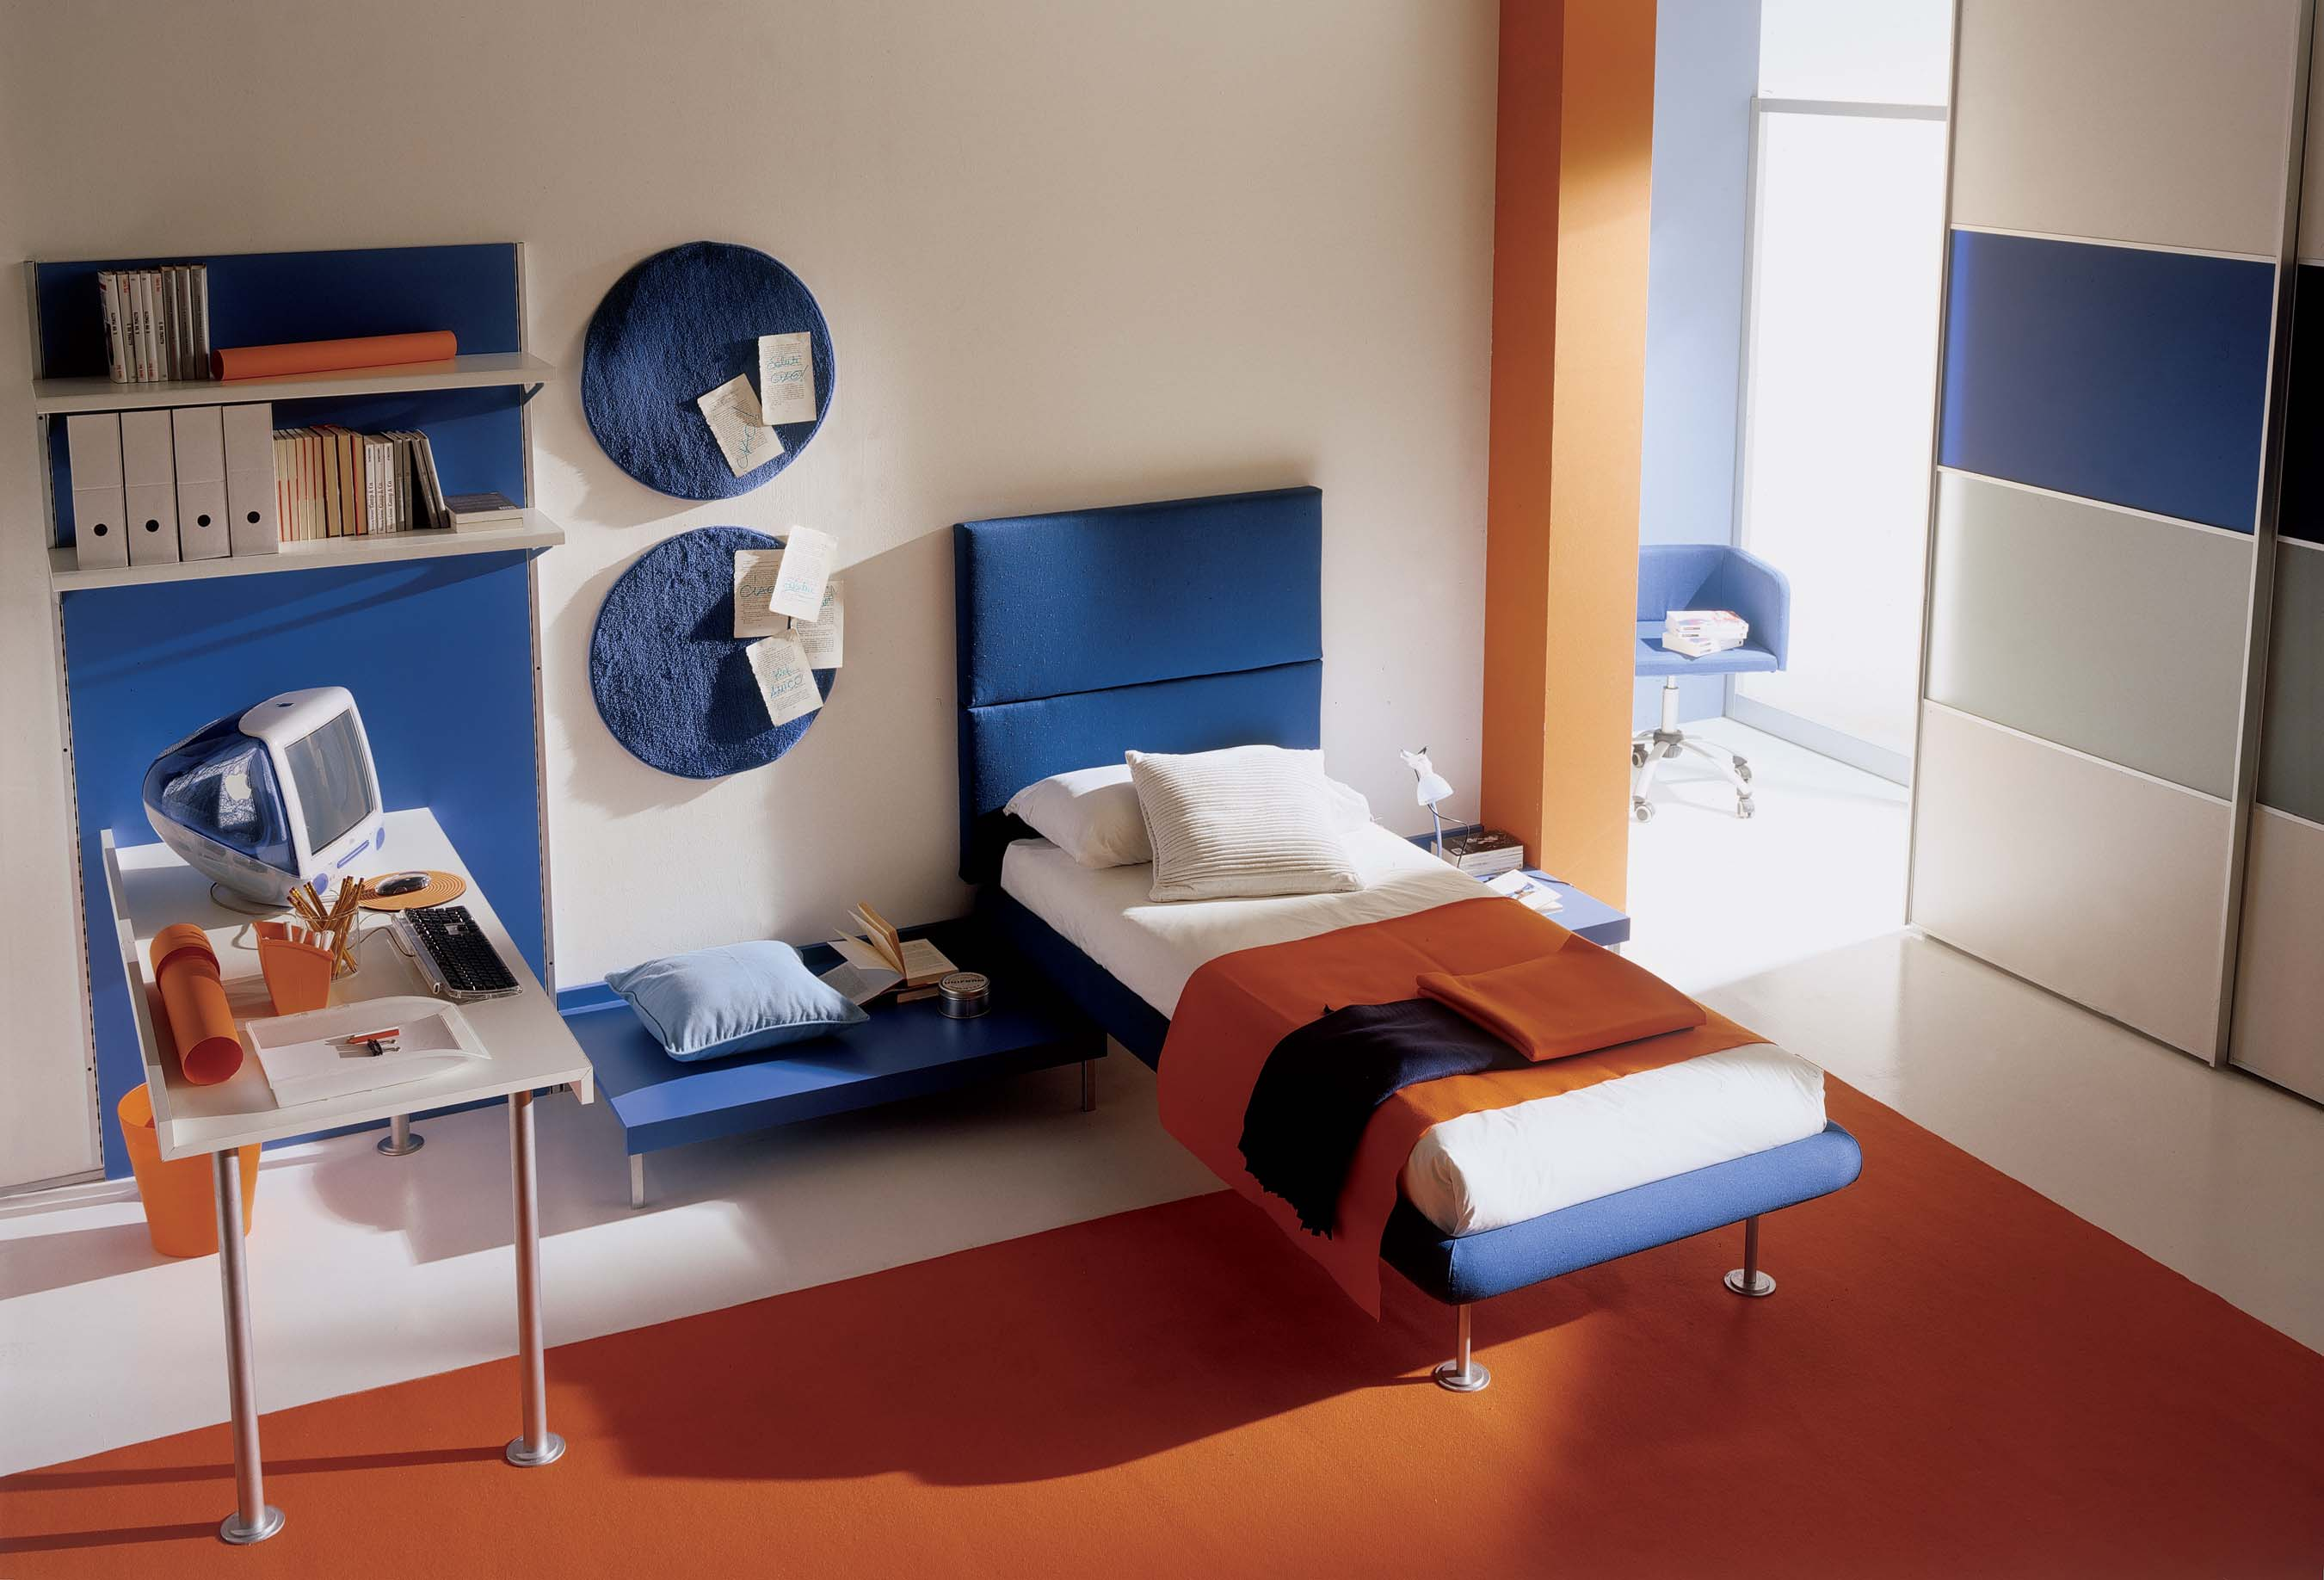 Contemporary Kids Bedroom Design Ideas By Mariani House Decor - Kids bedroom